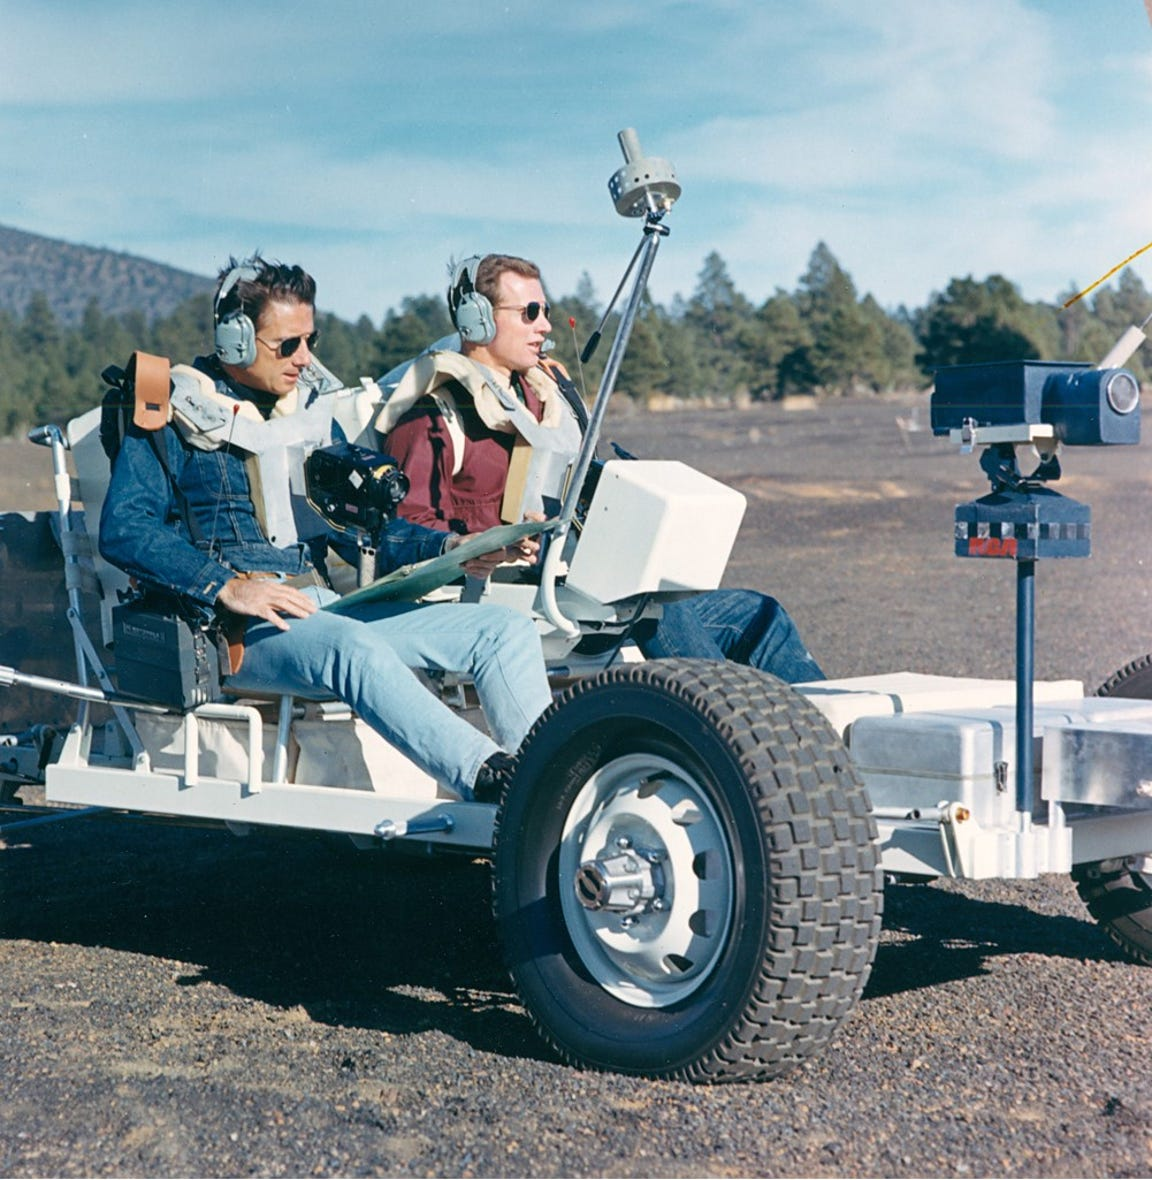 Astronauts James Irwin and David Scott drive the Grover vehicle at Cinder Lake Crater Field.